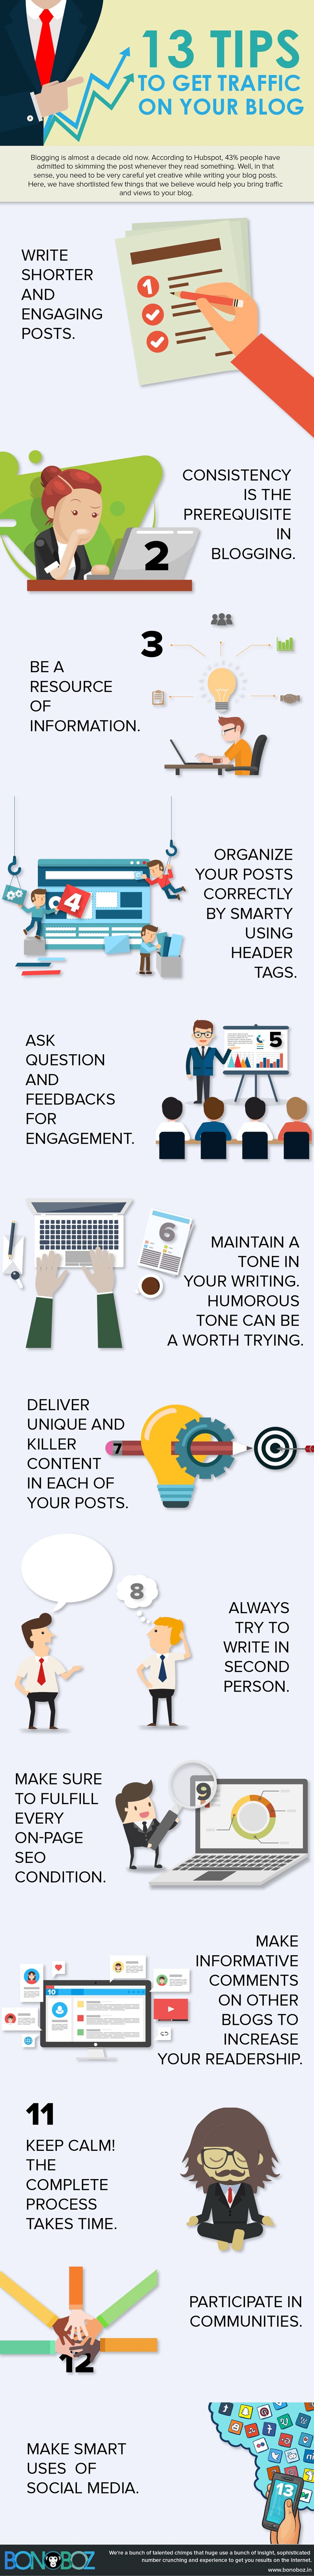 Infographic, SEO Traffic, Tips to Get traffic, How to get traffic